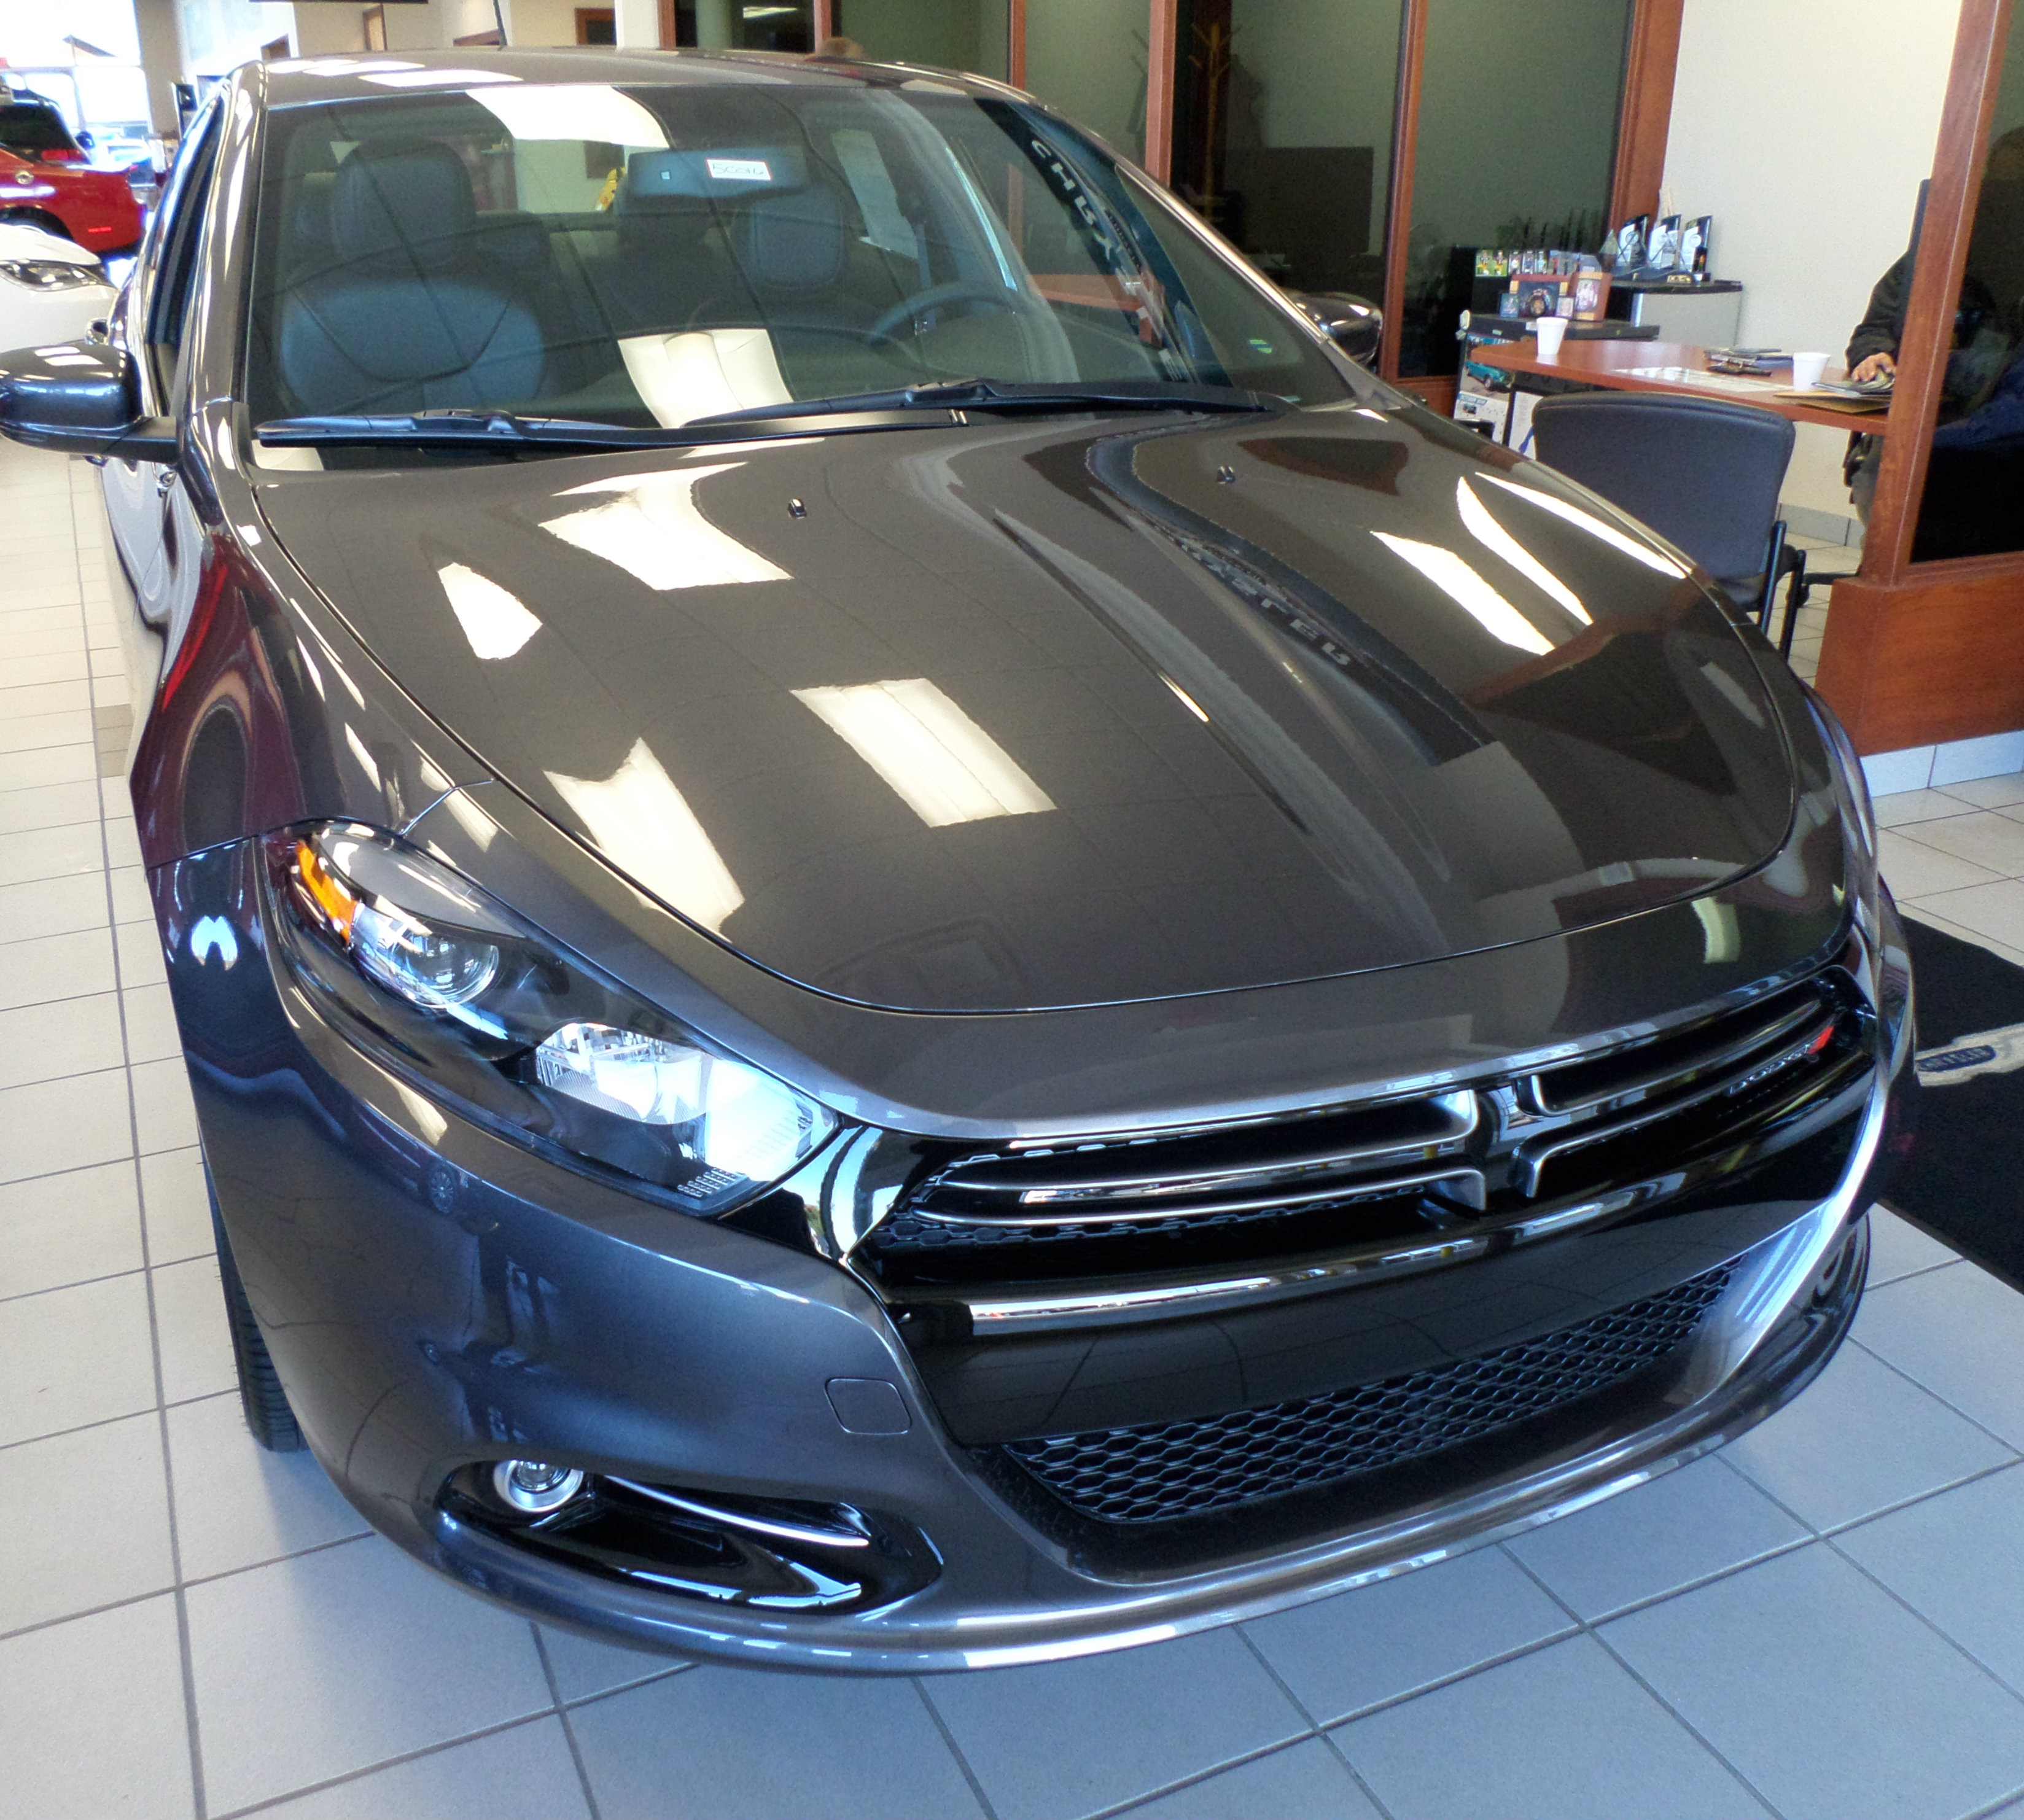 Check Out Some Of Our 2015 Inventory!